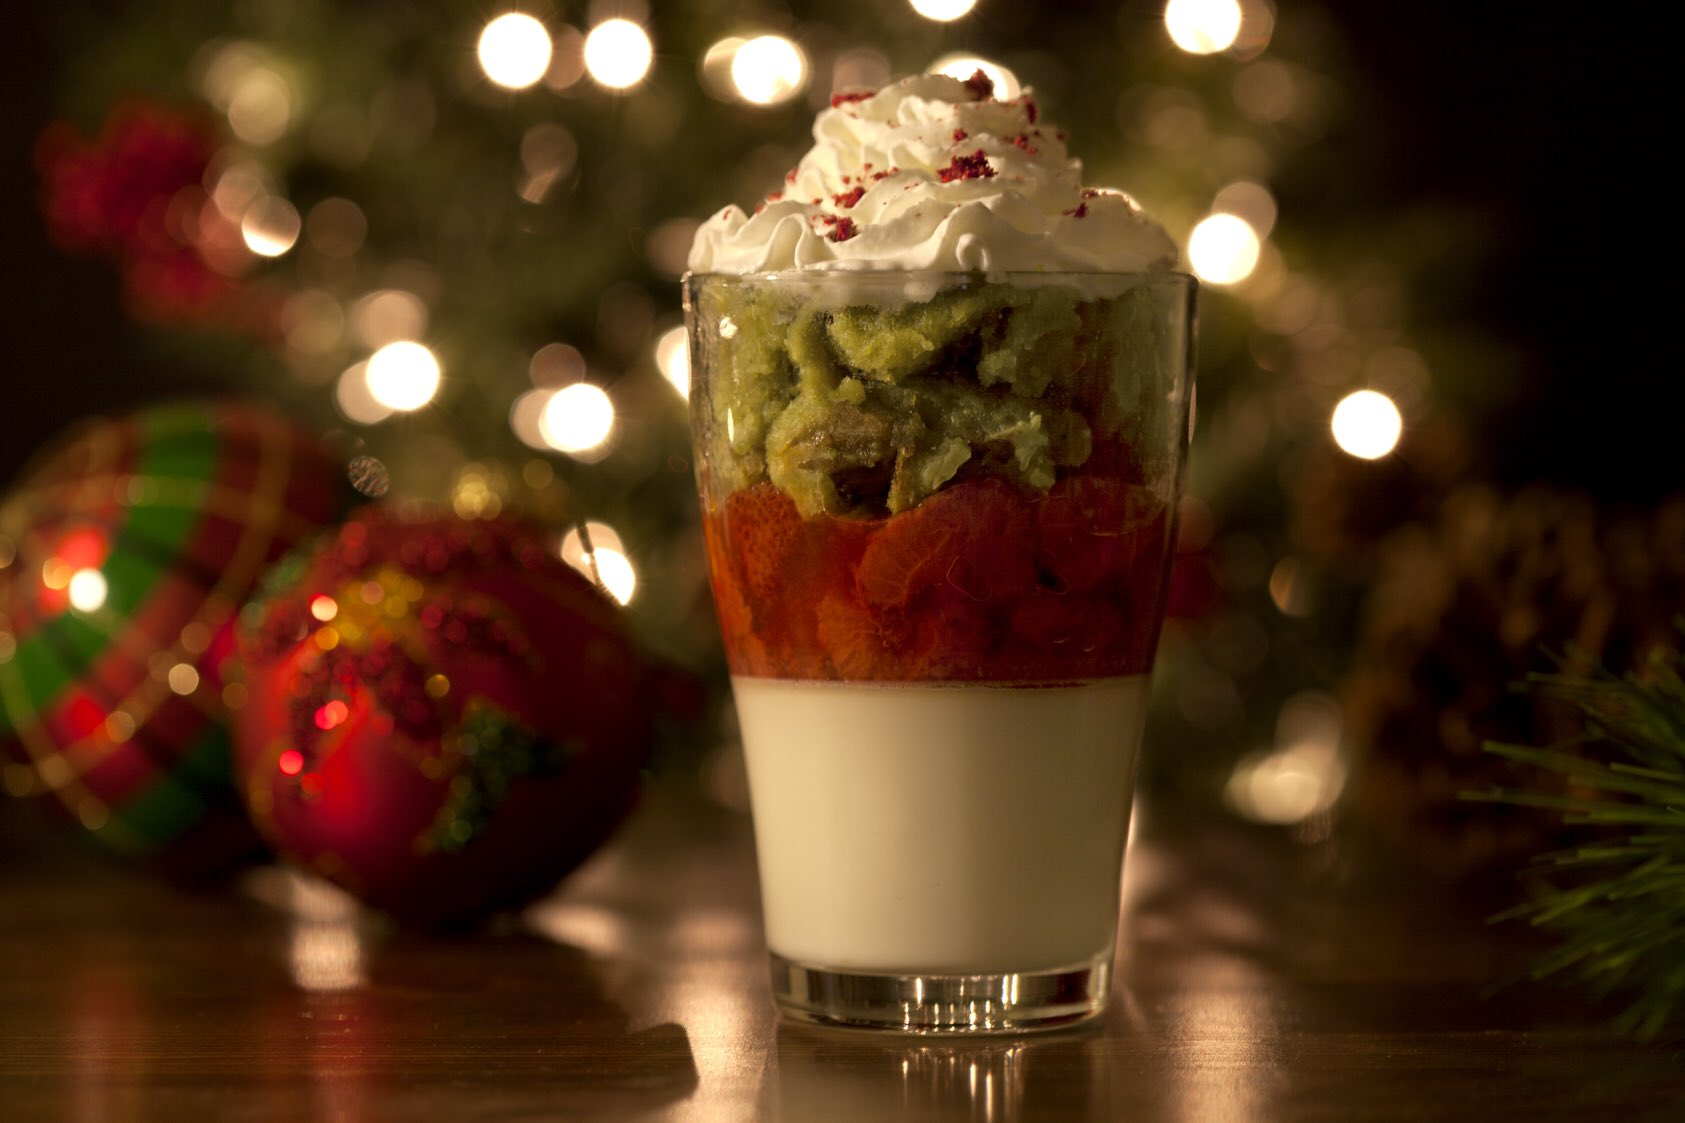 Christmas parfait that's red, green, and white